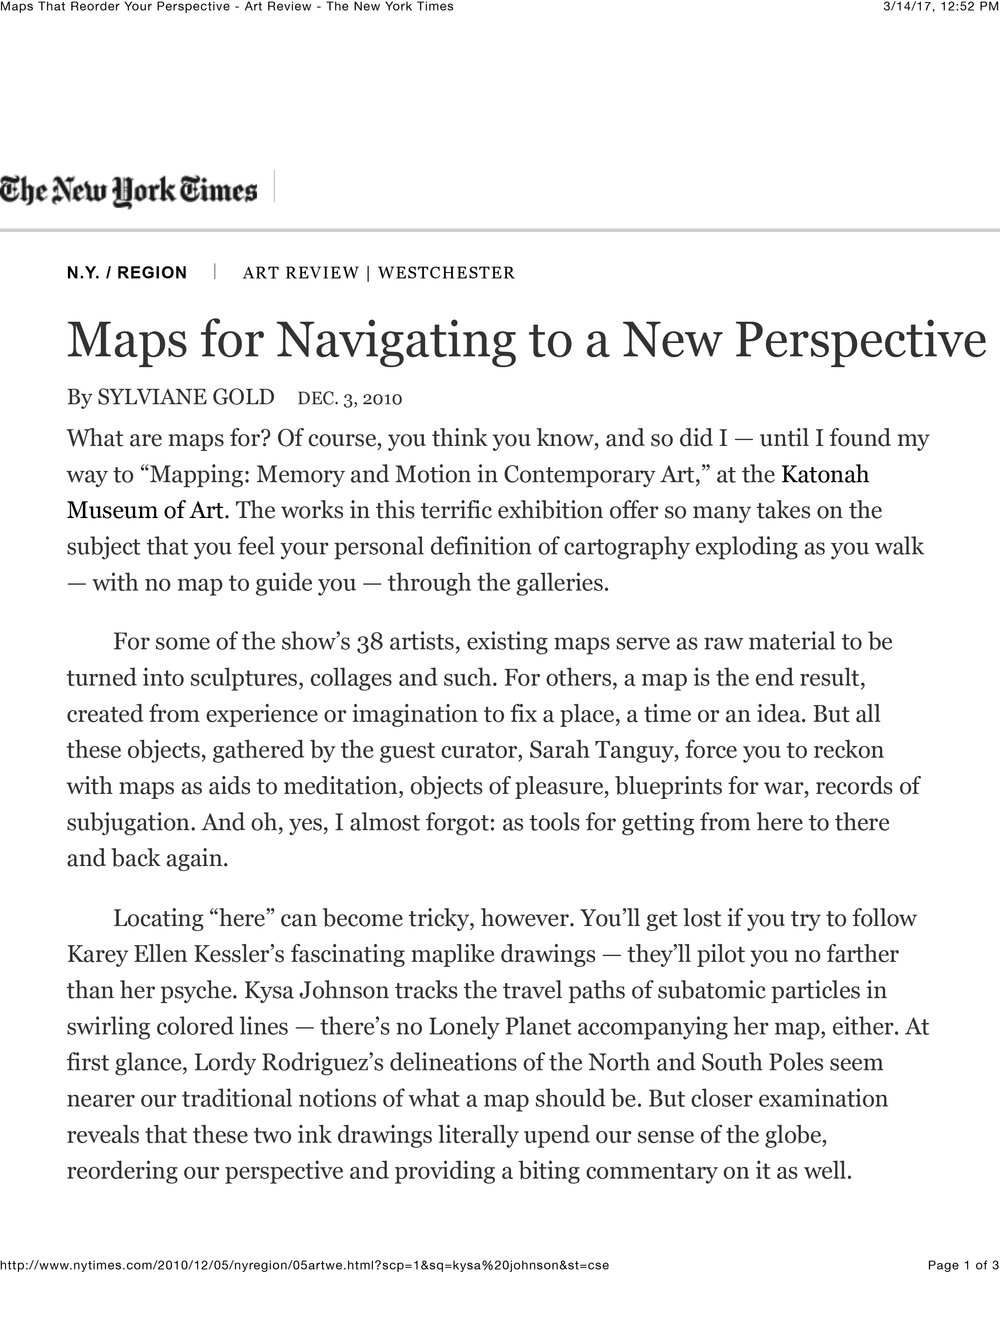 New York Times - Maps Katonah Musuem